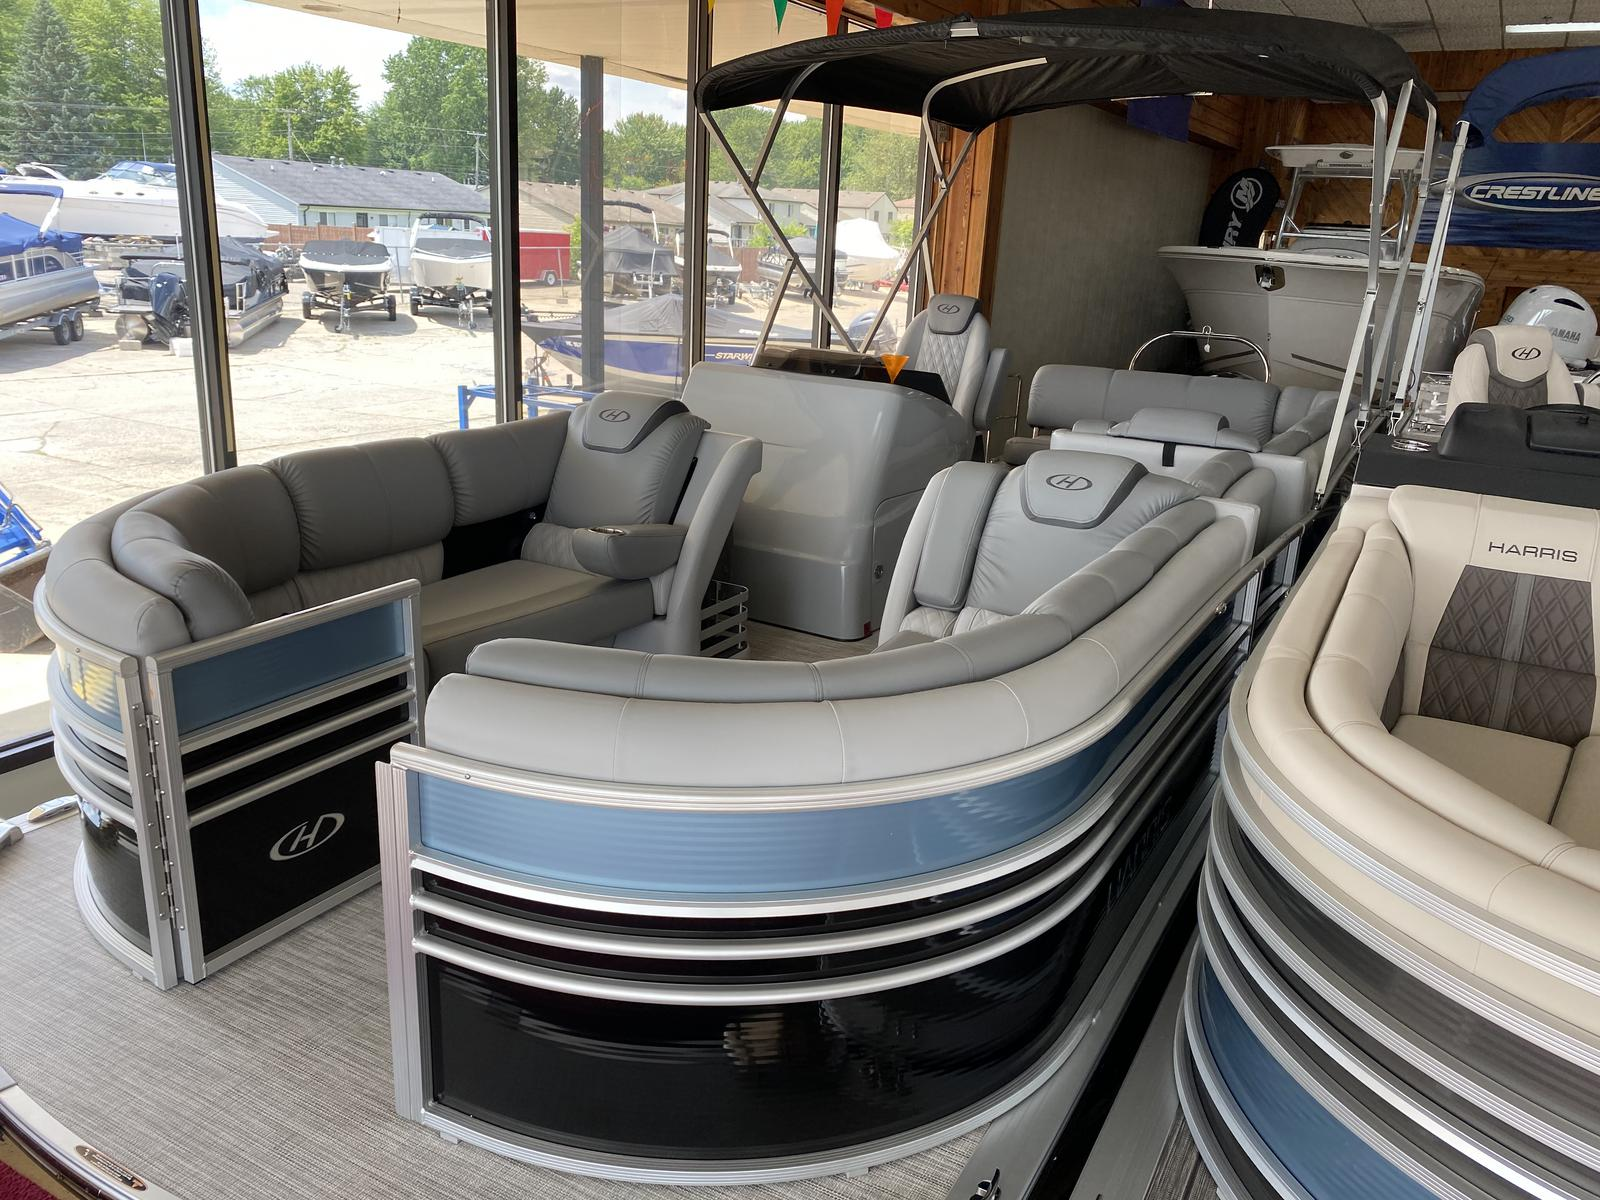 2020 Harris boat for sale, model of the boat is Grand Mariner 250 & Image # 1 of 13